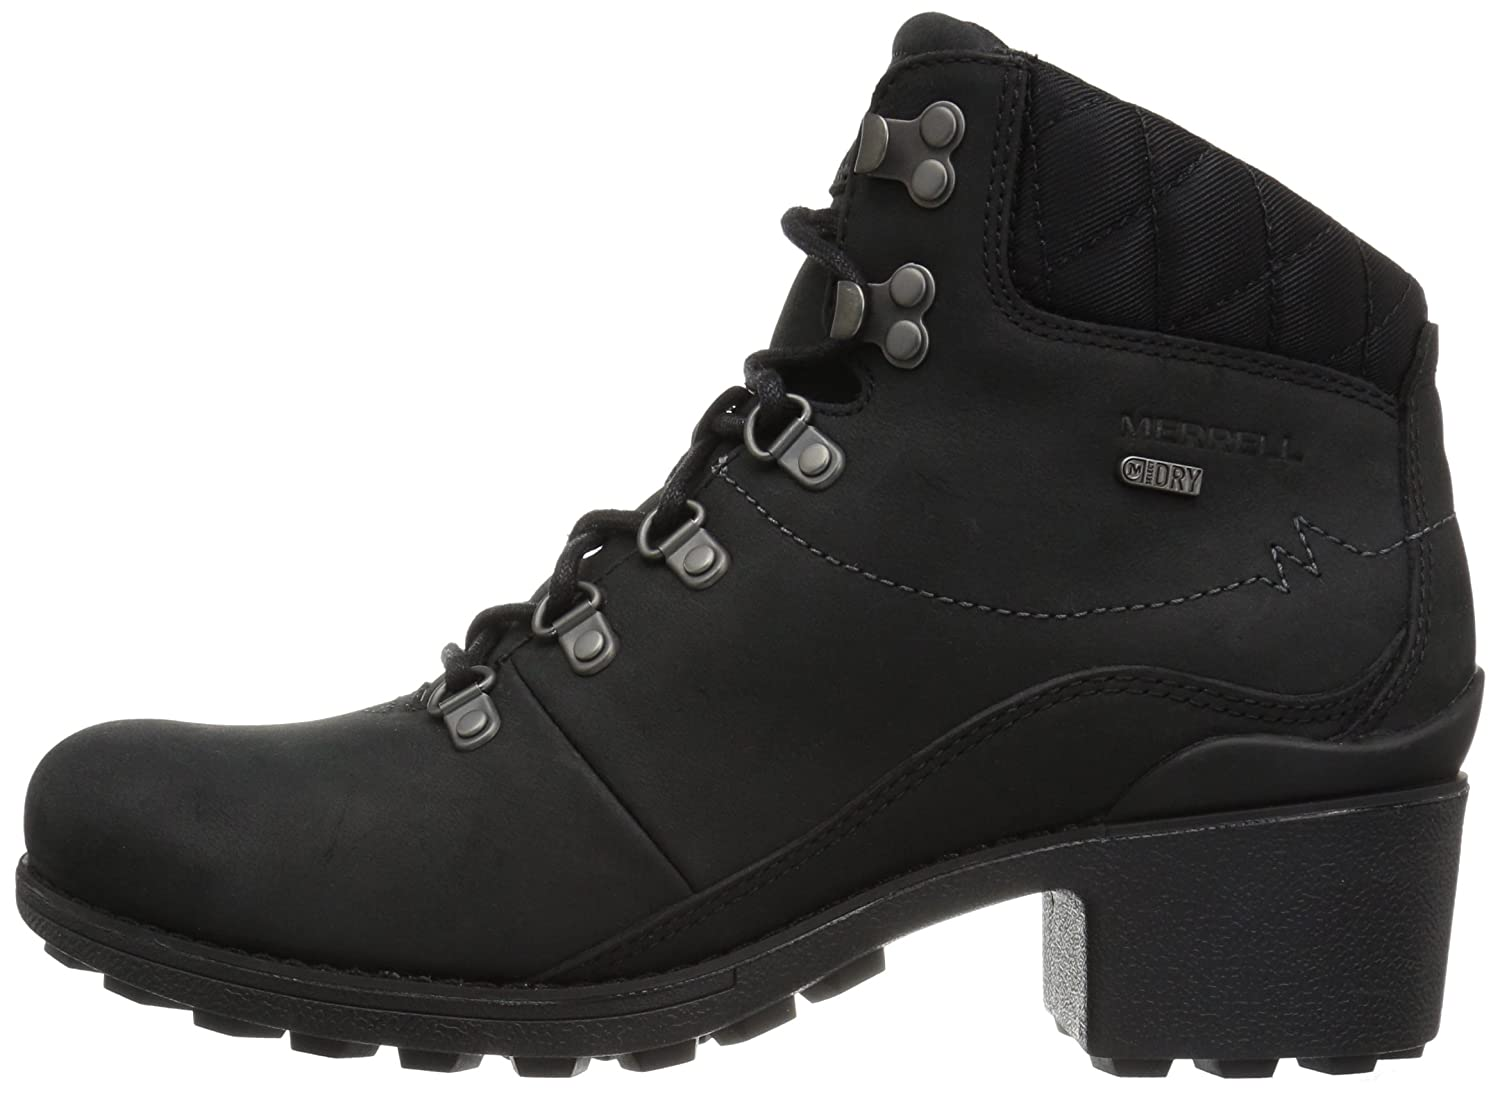 Merrell Women's Chateau 7.5 Mid Lace Waterproof Snow Boot B01MZ0B813 7.5 Chateau B(M) US|Black 5342e1